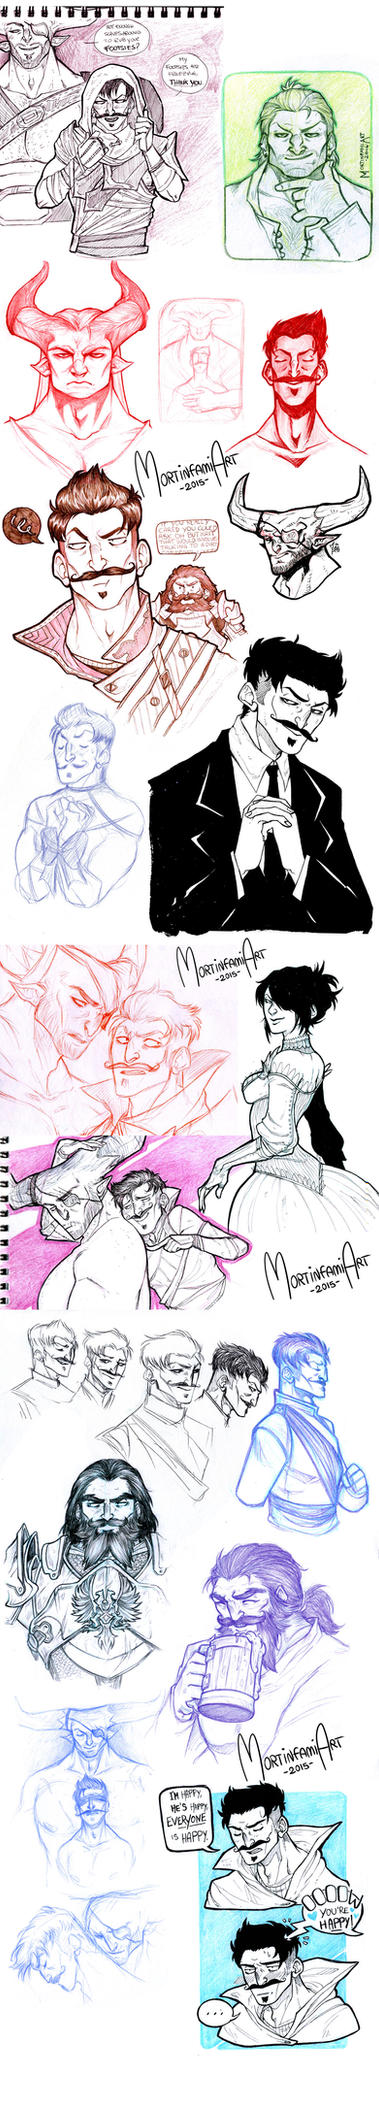 Dragon Age Inquisition - sketchdump #4 by mortinfamiART